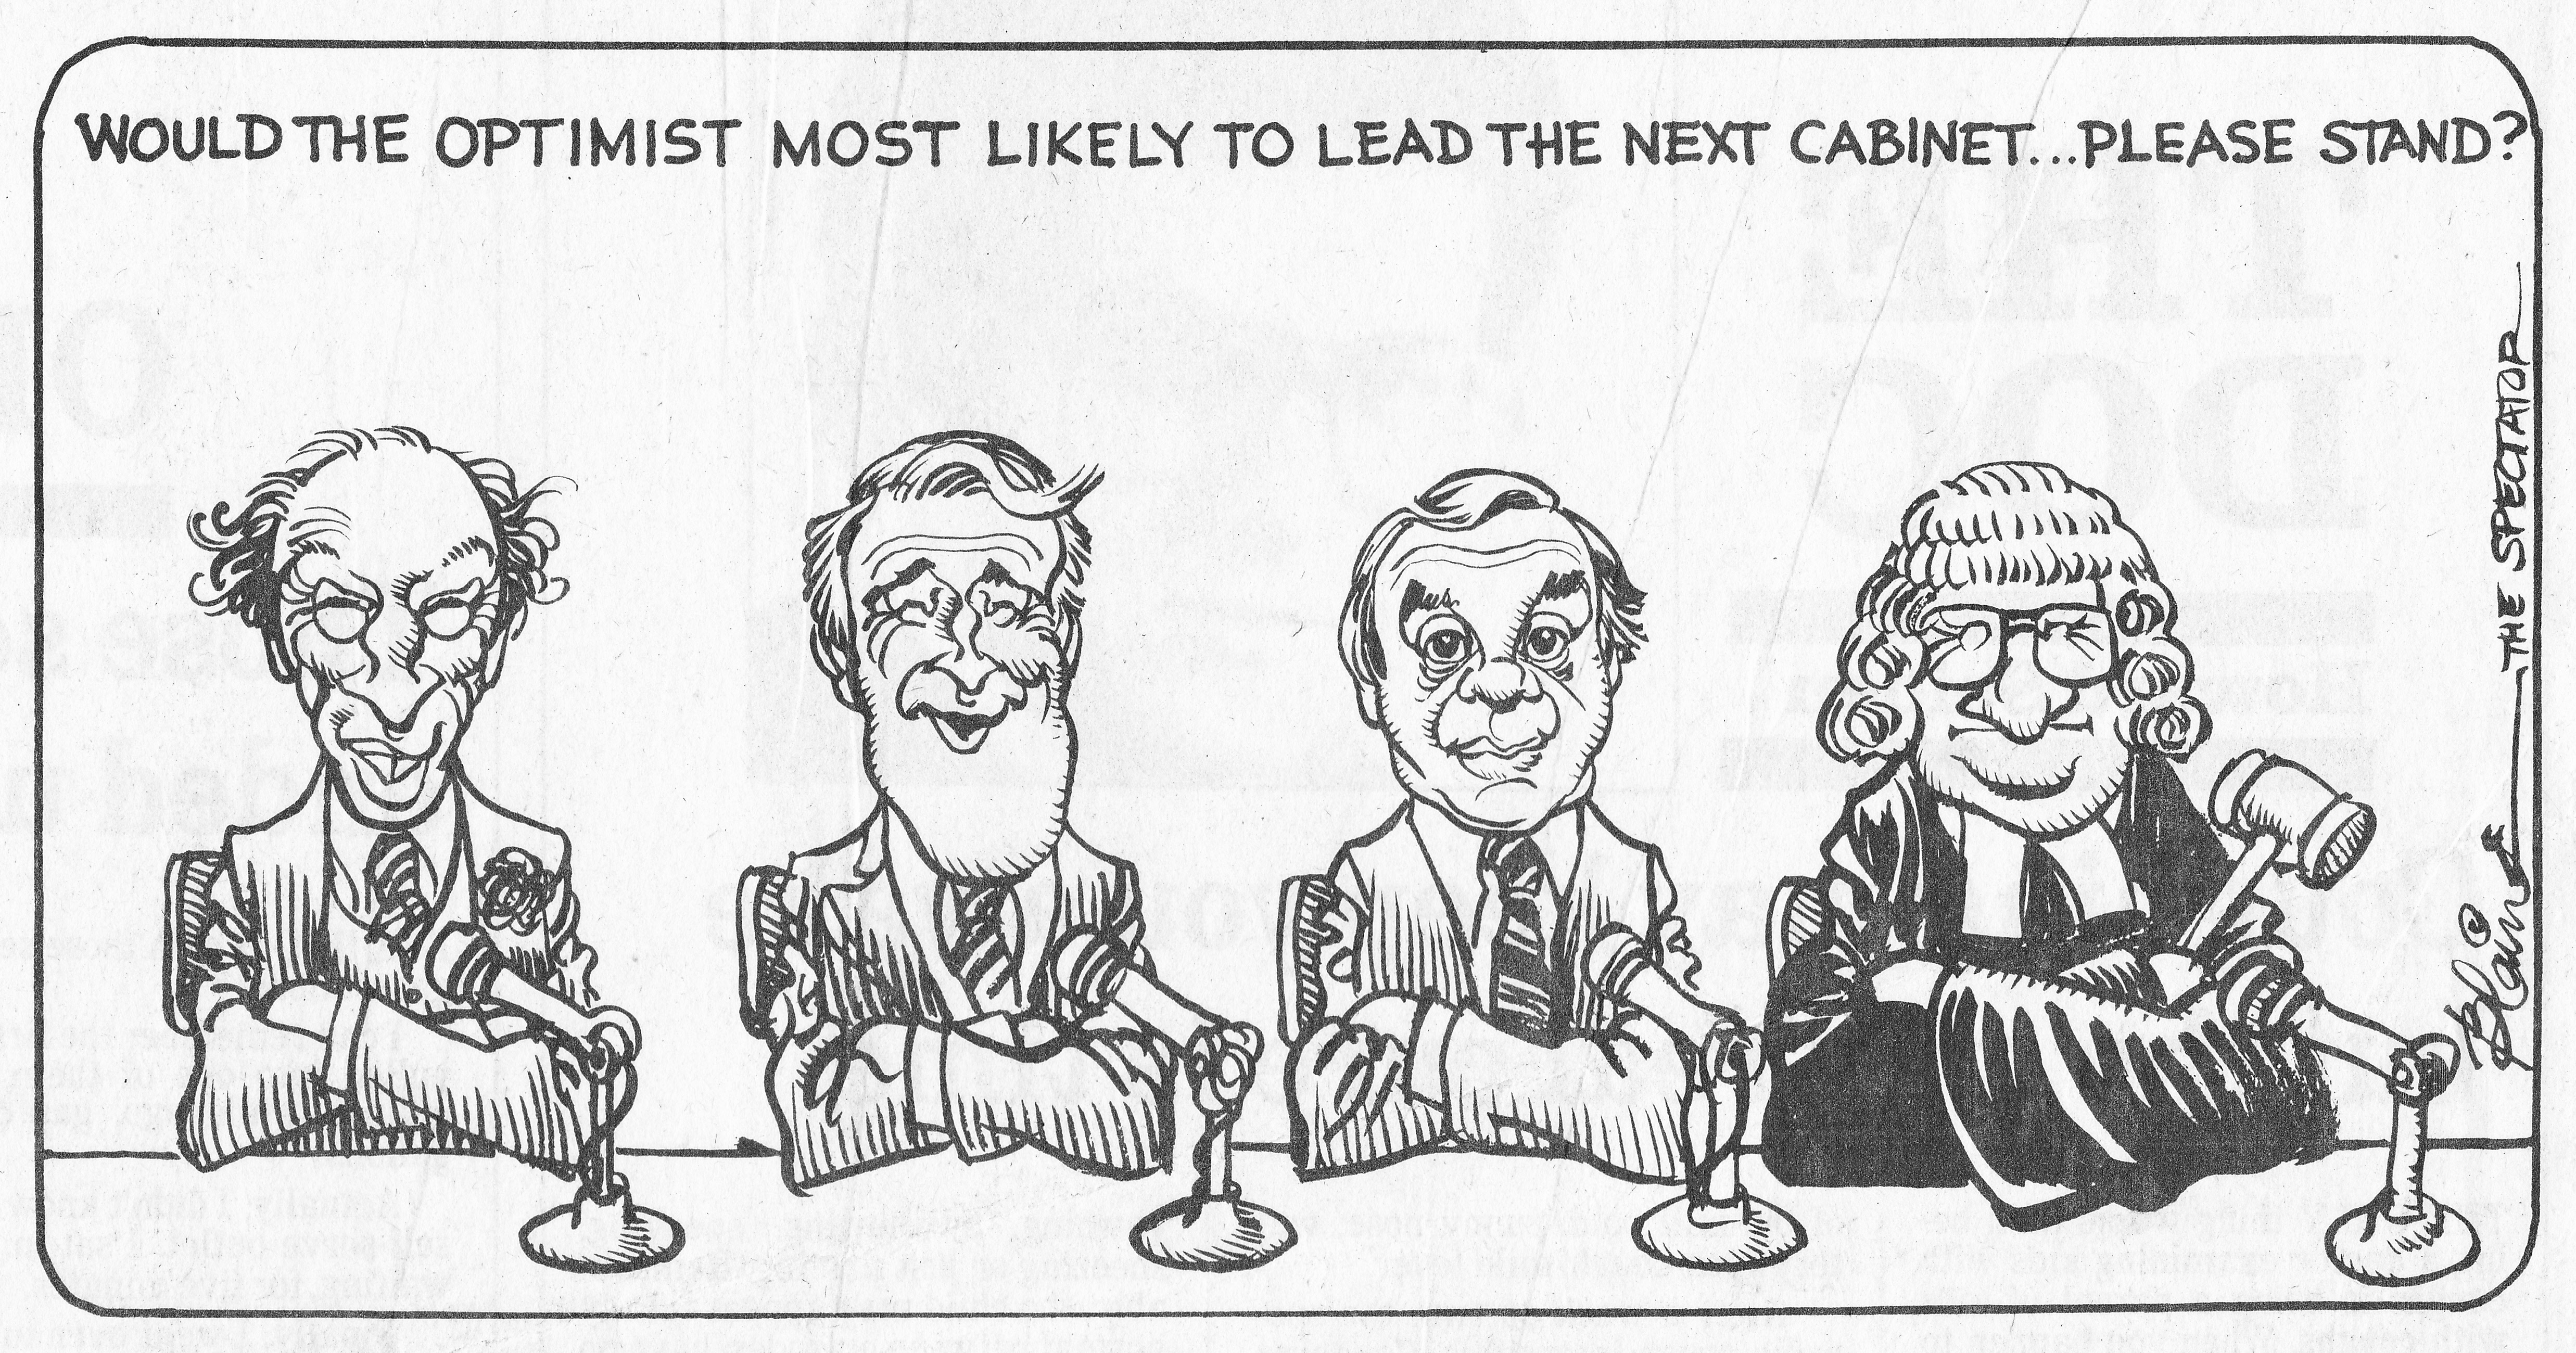 C:\Users\Robert\Documents\CARTOONING ILLUSTRATION ANIMATION\IMAGE BY CARTOONIST\M\MacDONALD BLAINE, Hamilton Spectator, 15 Oct. 1983, F4.jpg